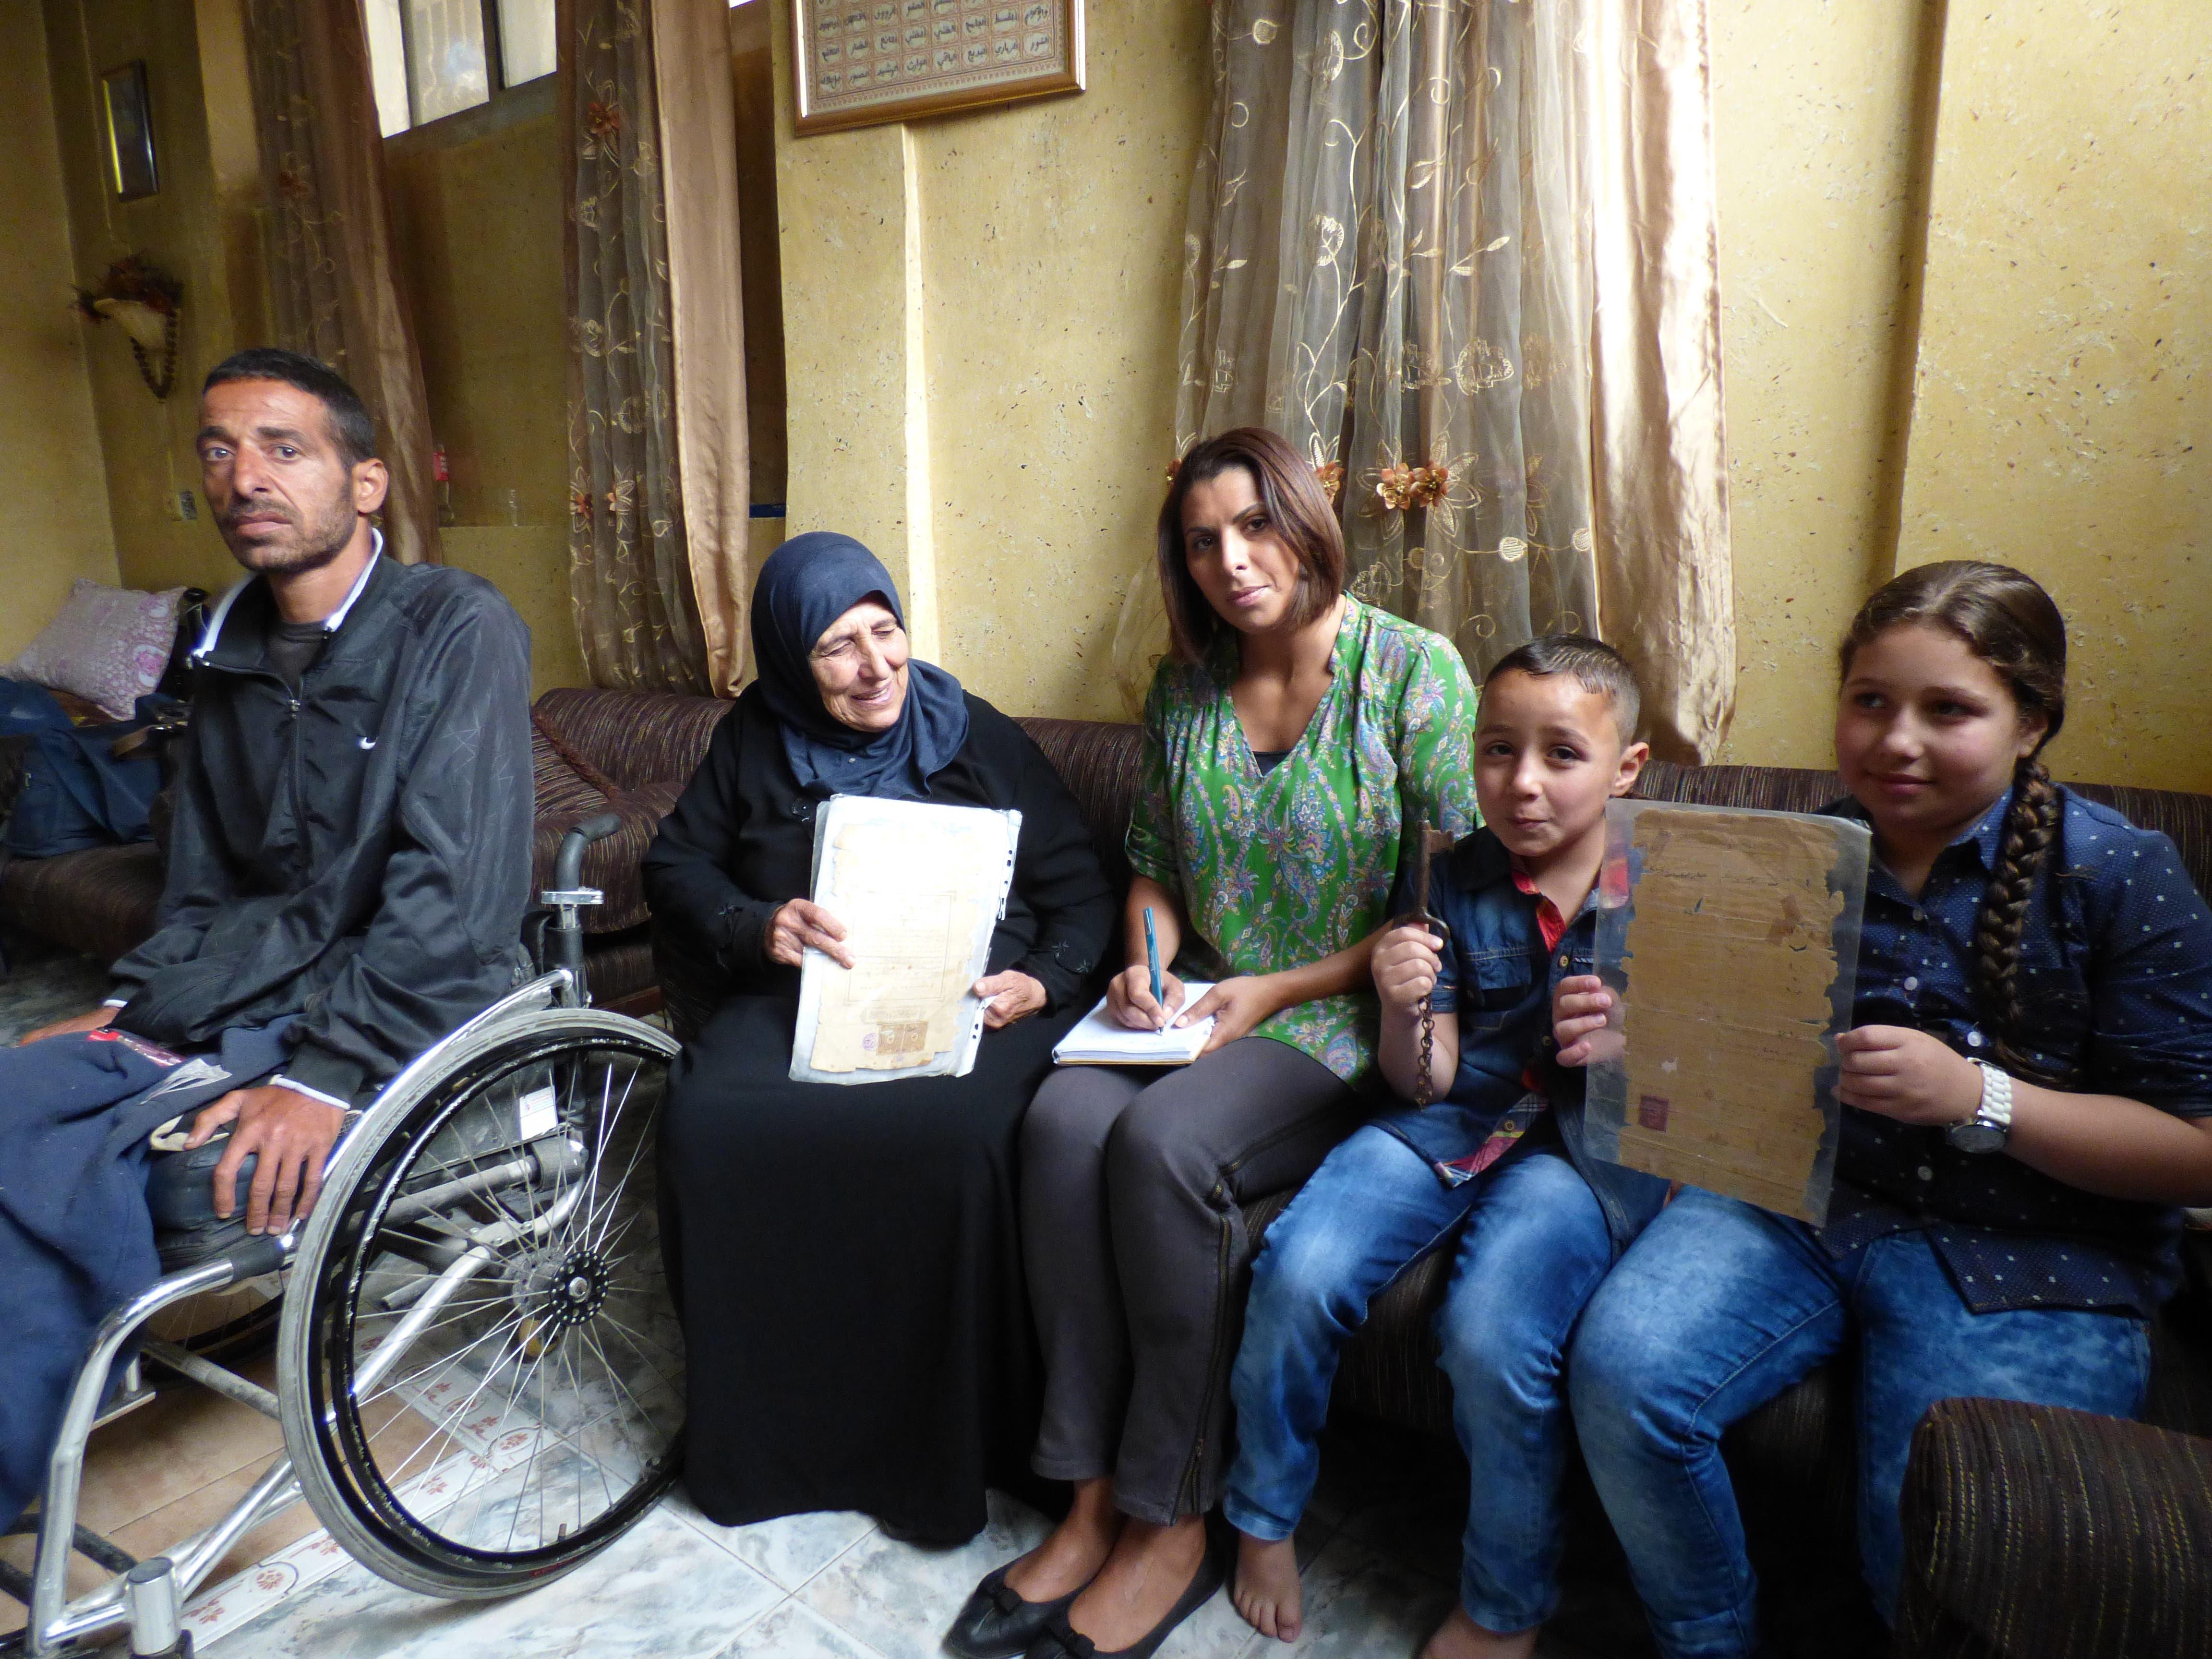 Journalist Nabila Ramdani with Fatma Hussein Omar, 67, with her son Ahmed, 37, paralysed by the Israeli army and her grandchildren Ali, 7 and Angham, 9 - holding the key and legal documents of the family home confiscated by Israel's Zionist paramilitaries in 1948. (Al Arabiya/ Nabila Ramdani)